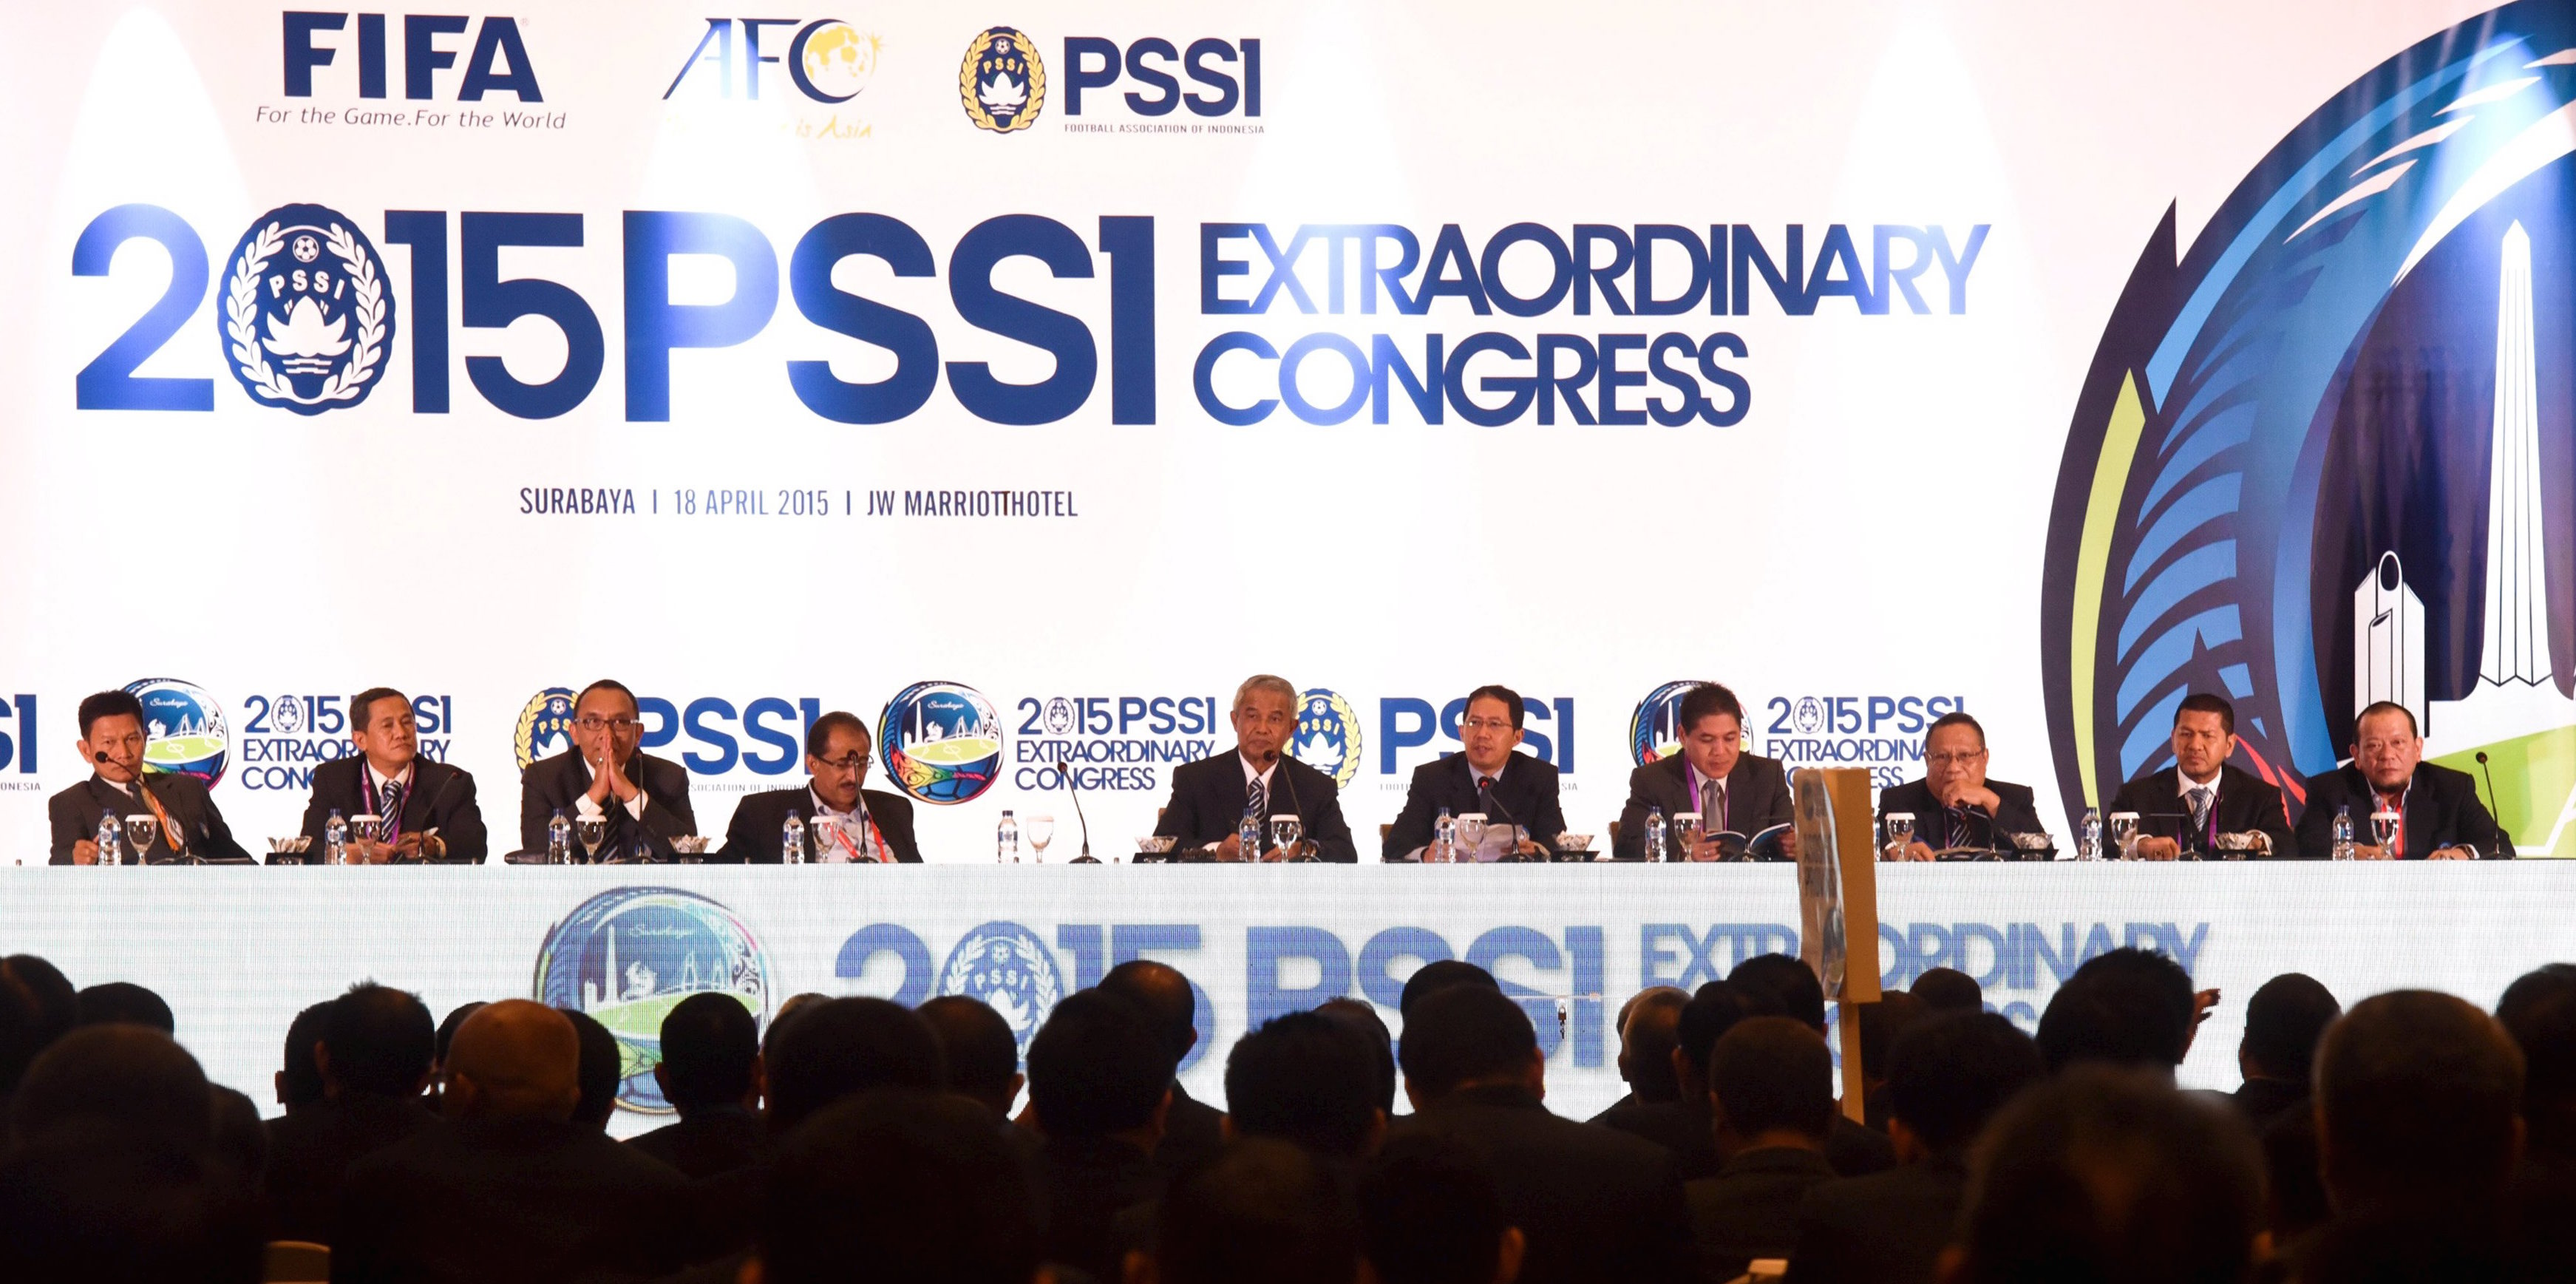 The organization committee of local soccer association PSSI attend the opening ceremony of PSSI Extraordinary Congress in Surabaya